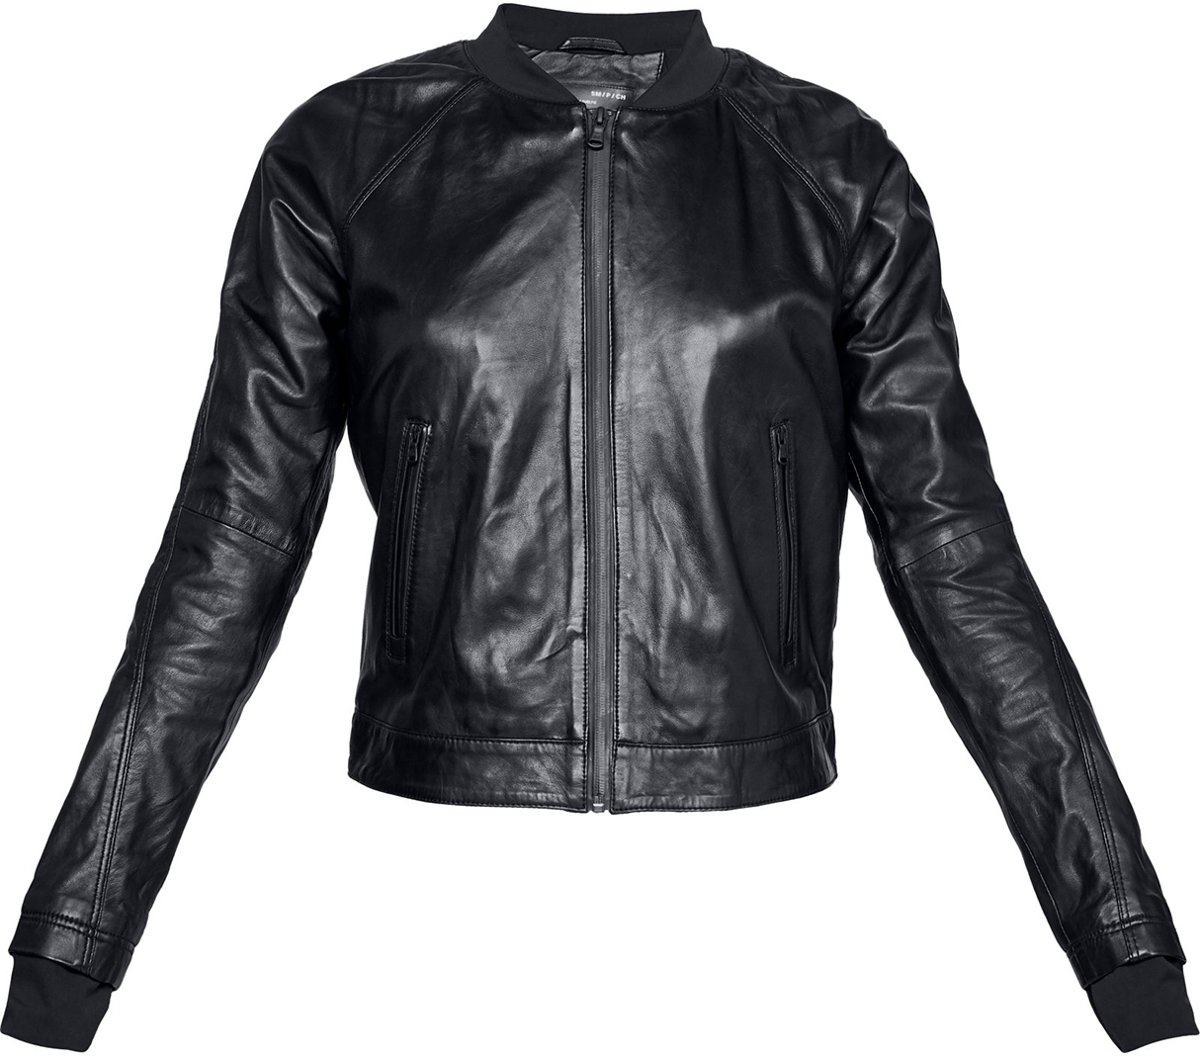 Under Armour - Misty Leather Jacket-BLK - Dames - maat XS